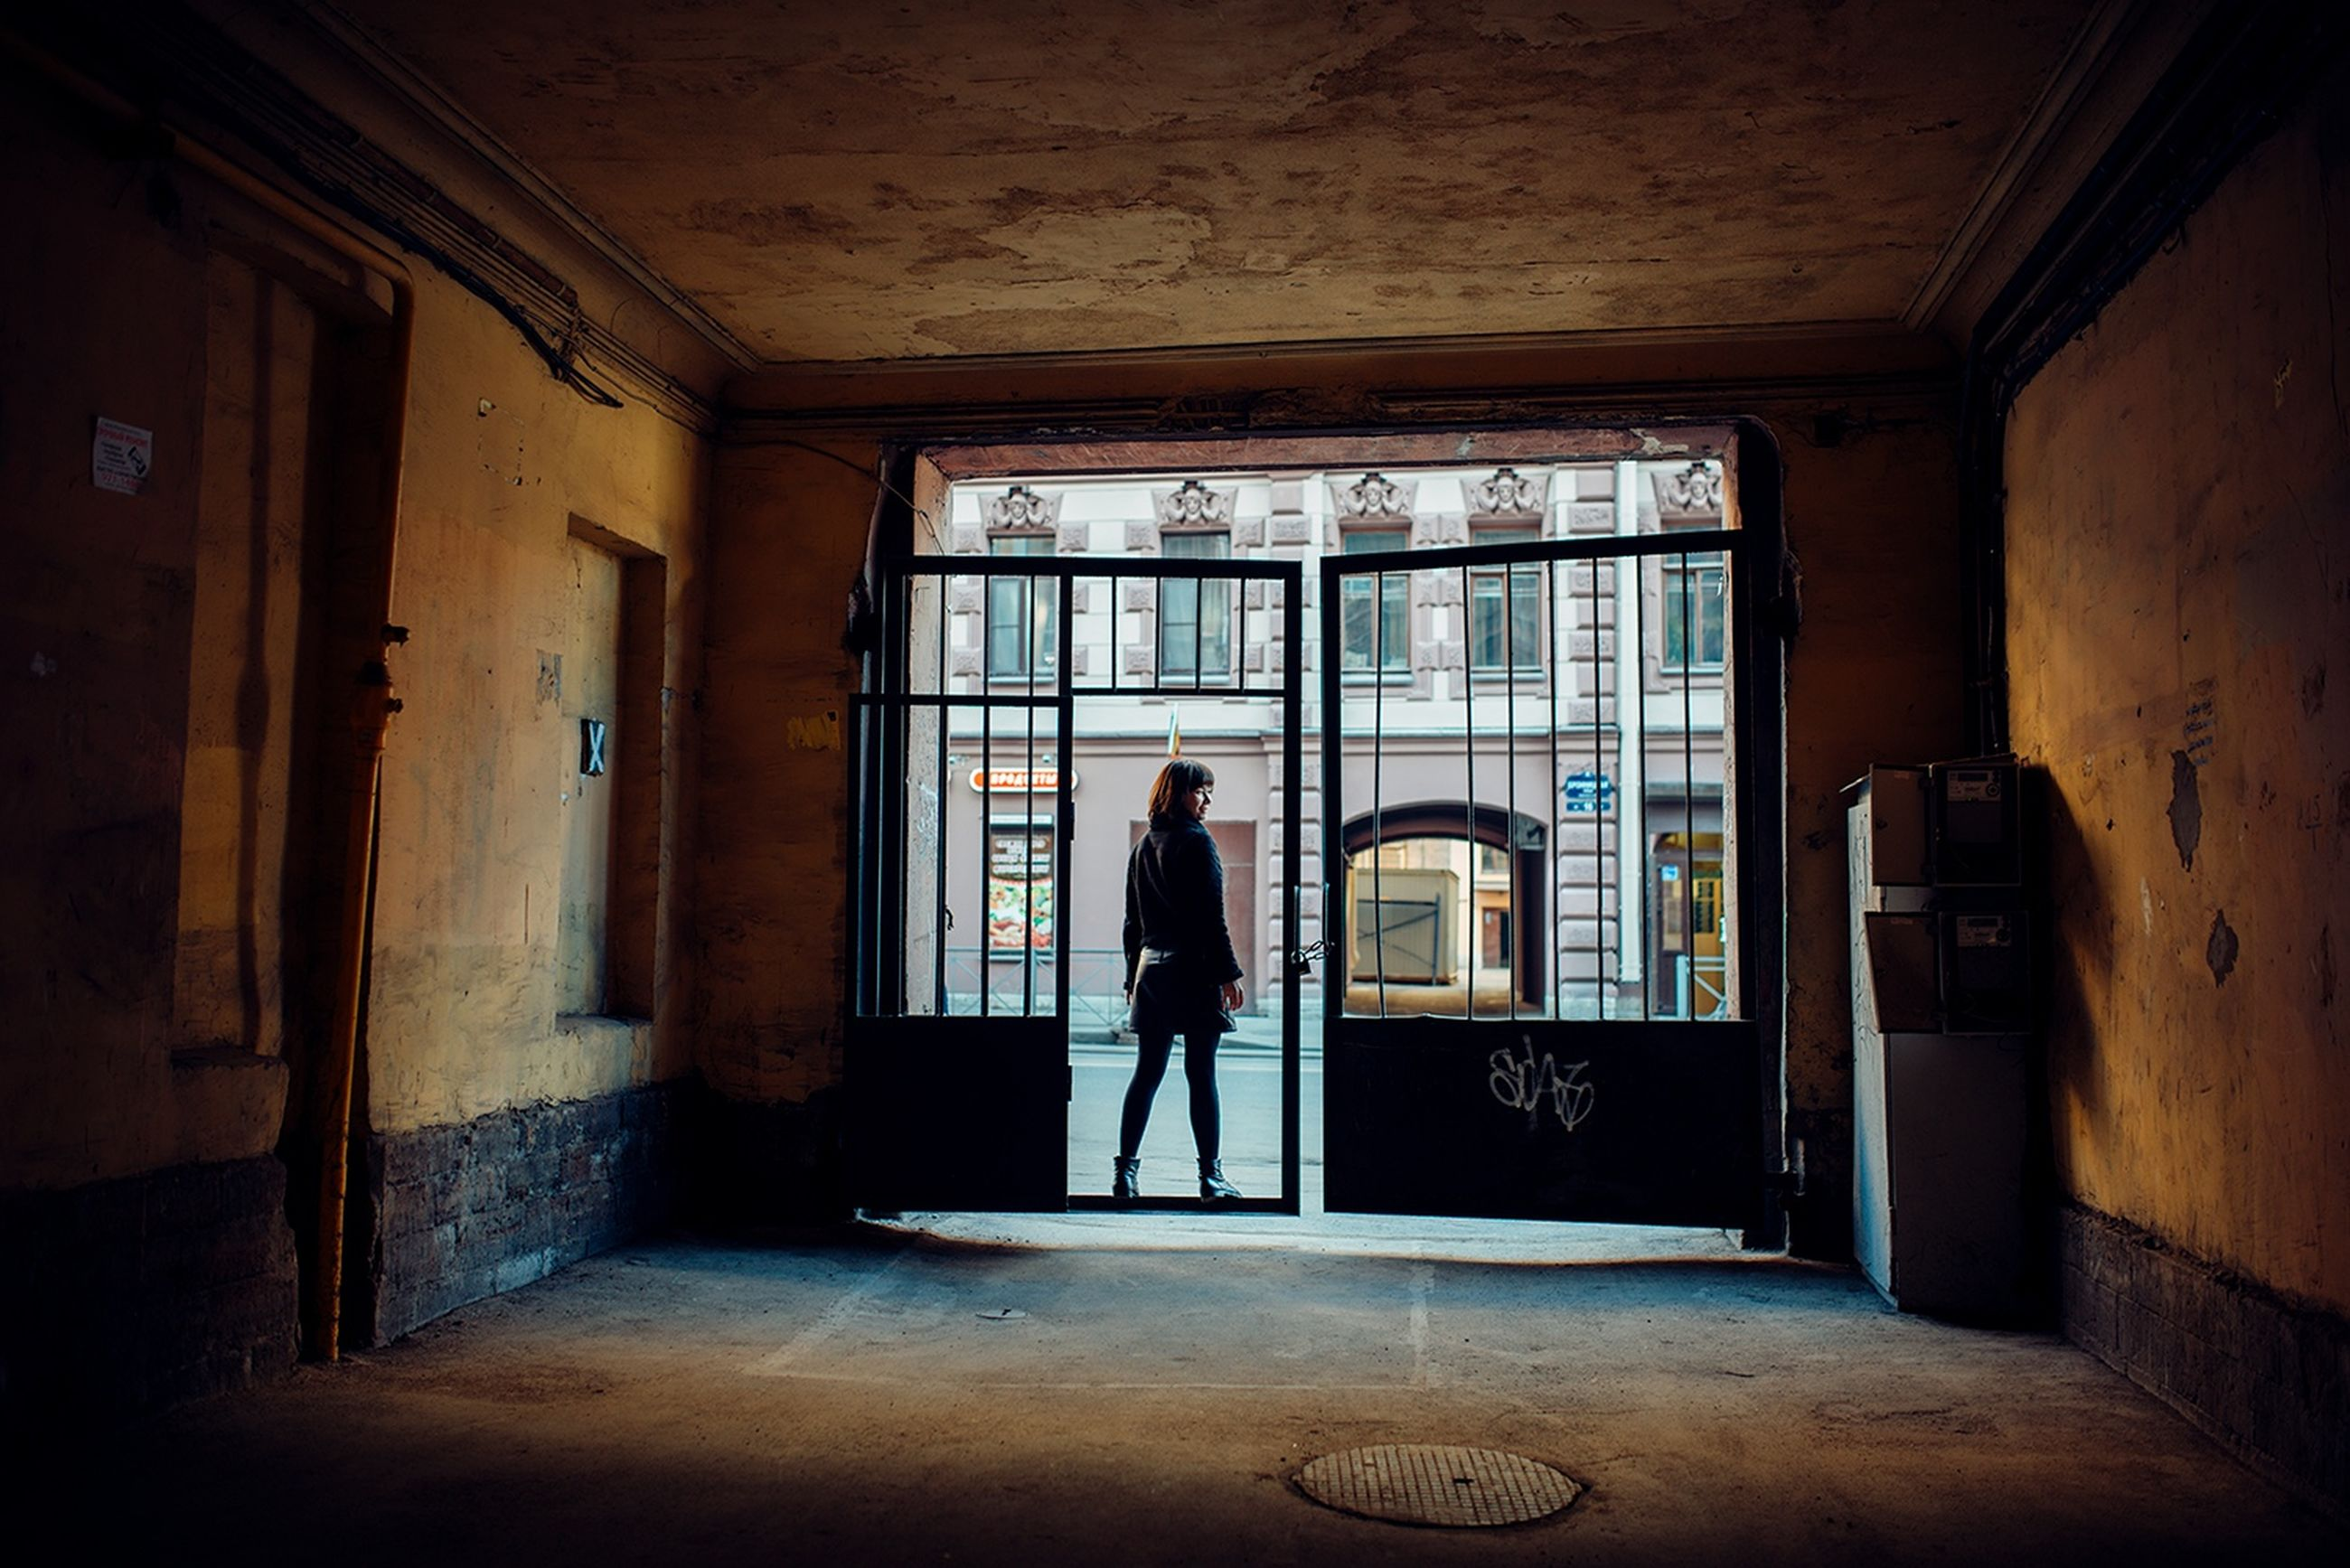 indoors, one person, full length, architecture, window, entrance, day, standing, real people, adult, building, door, built structure, casual clothing, women, walking, men, looking, leaving